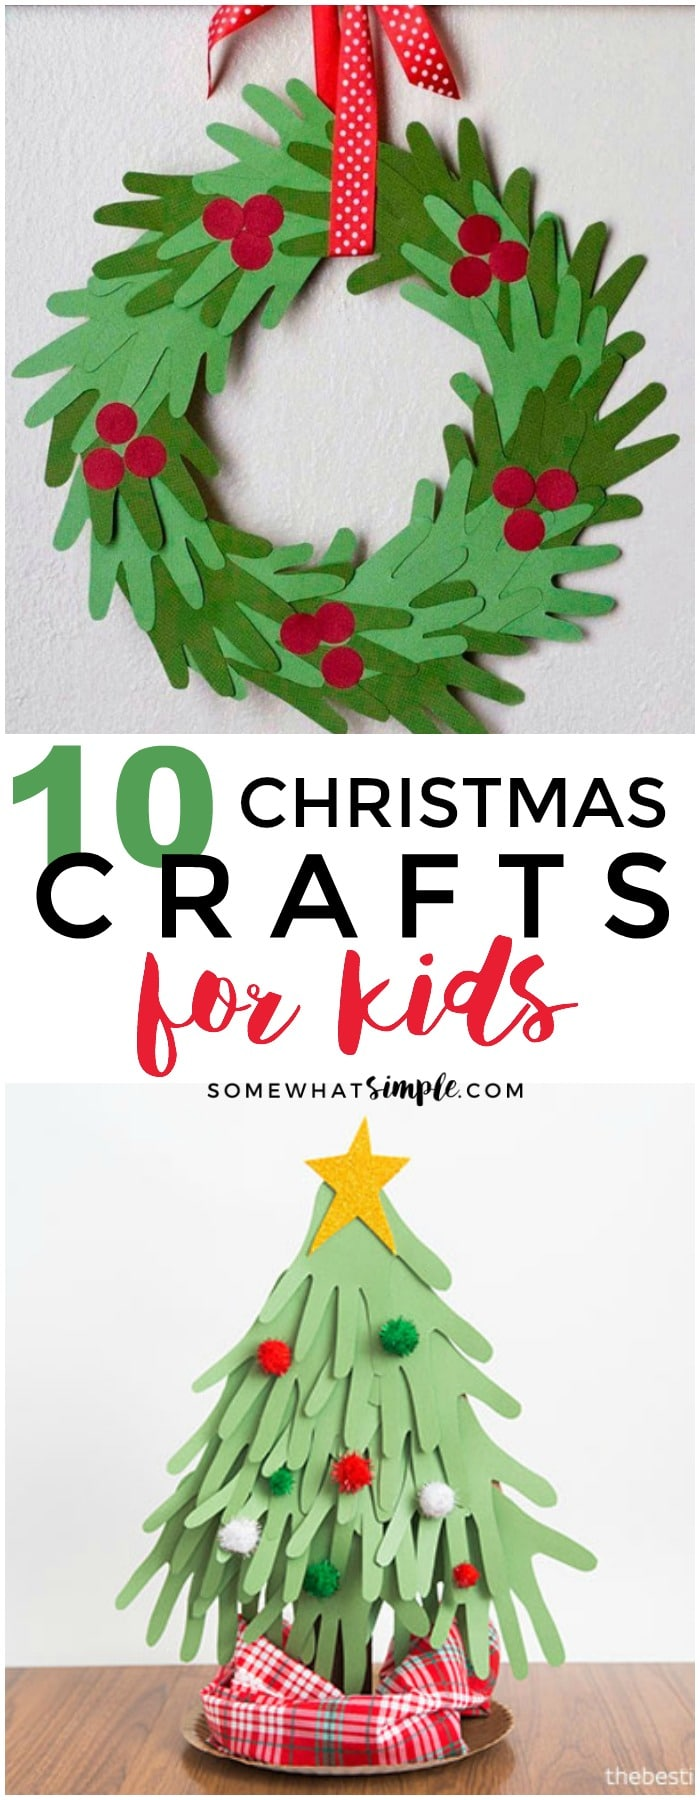 10 of our favorite EASY Christmas Crafts for Kids that arenot only adorable, but they are super SIMPLE too! via @somewhatsimple